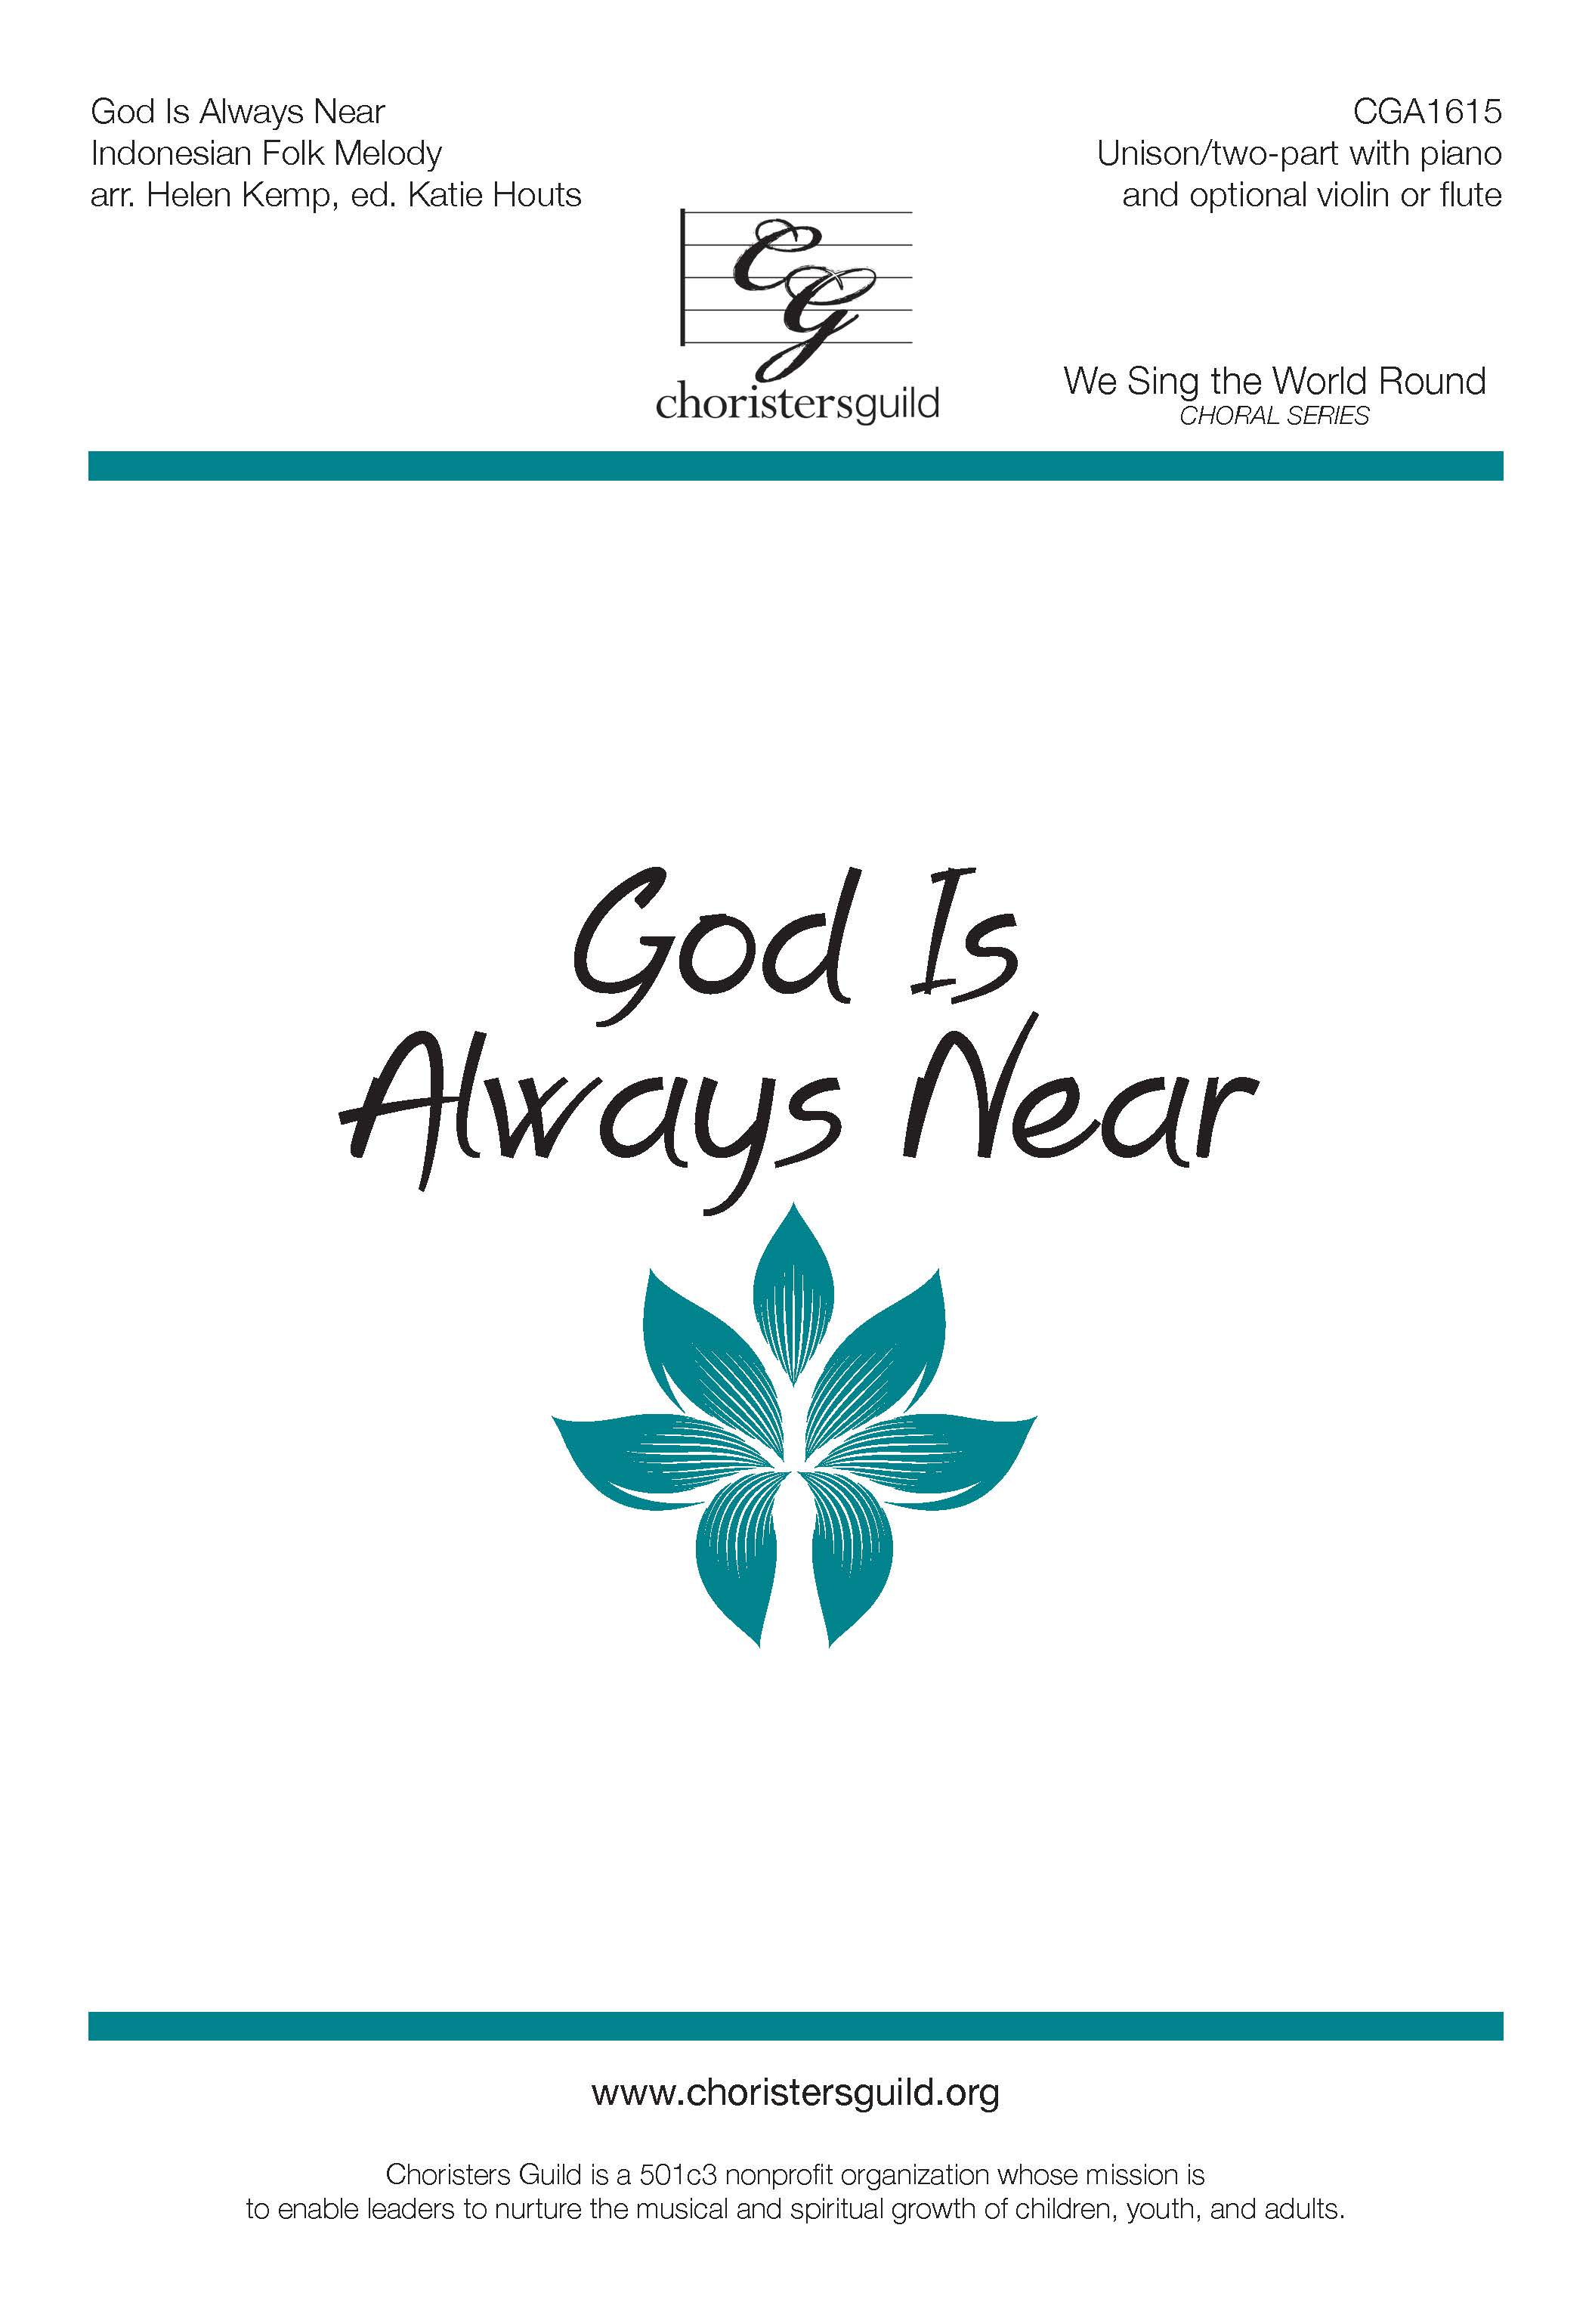 God is Always Near - Unison/Two-part